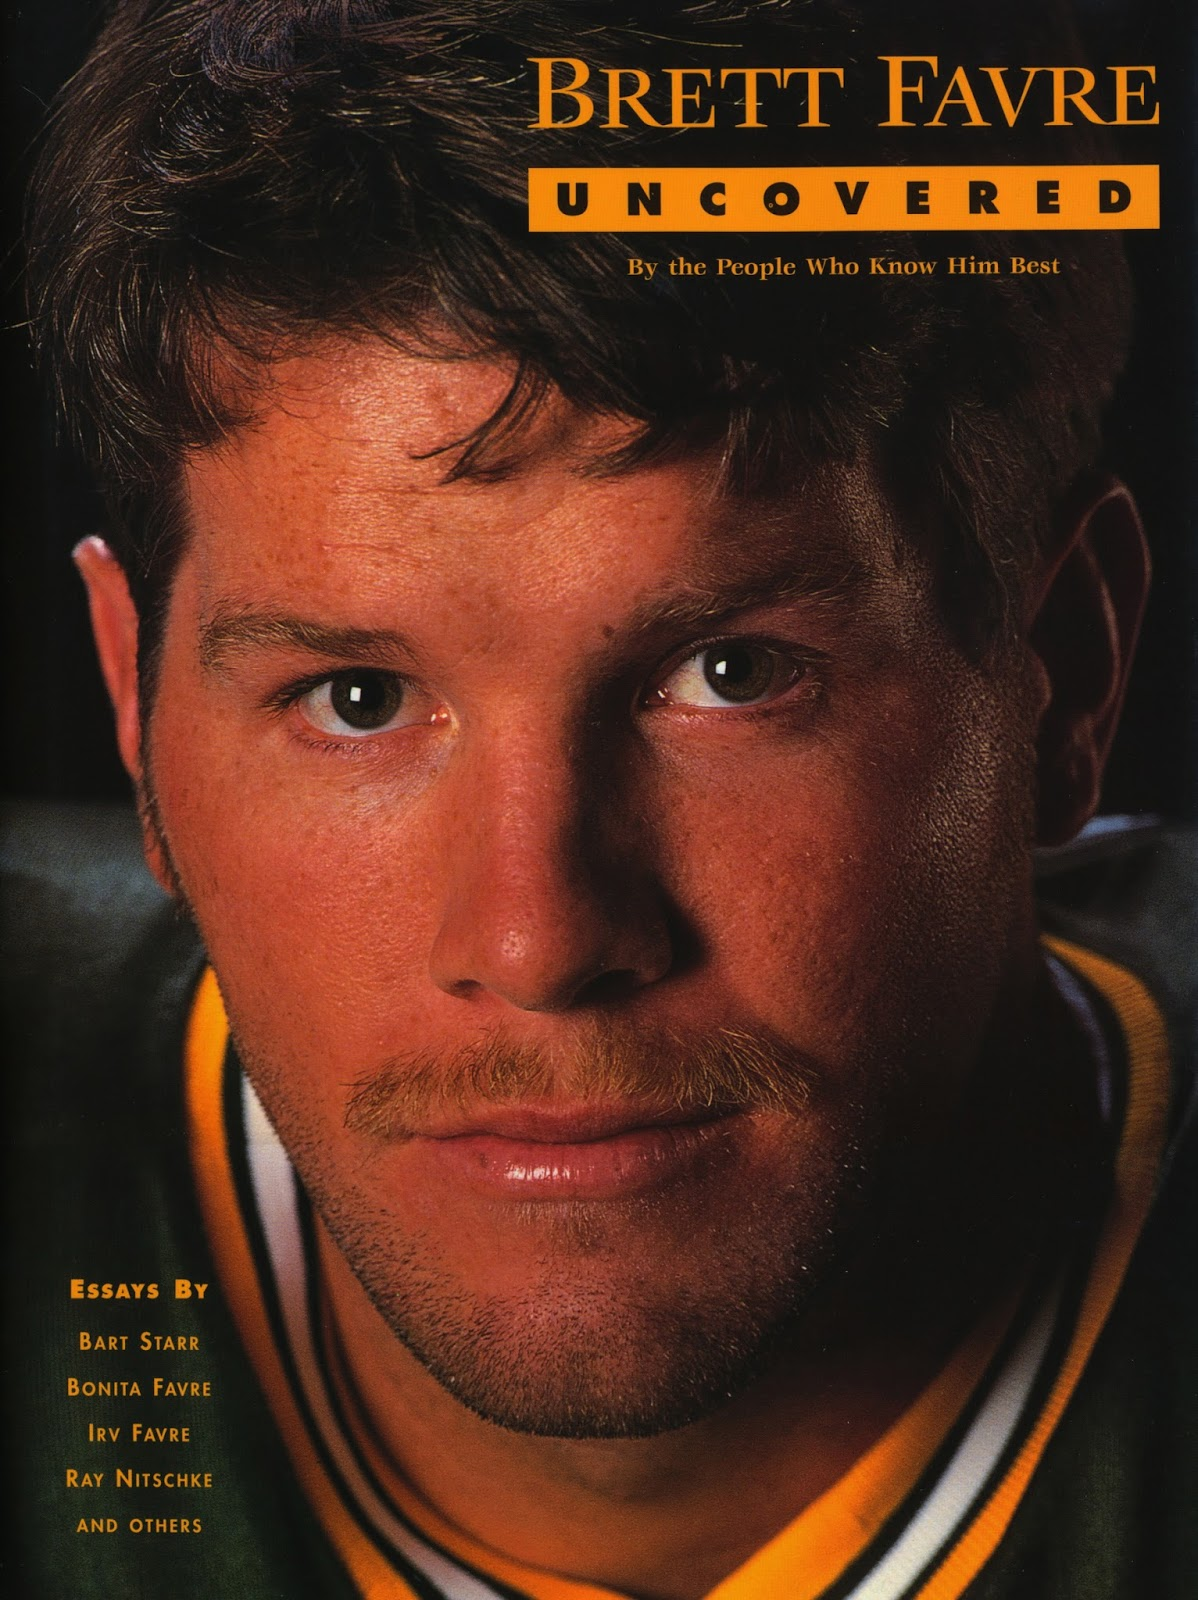 a biography paper of brett favre Brett favre started four years as quarterback at southern mississippi before he was drafted in the second round (33rd overall) by the atlanta falcons in the 1991 nfl draft.